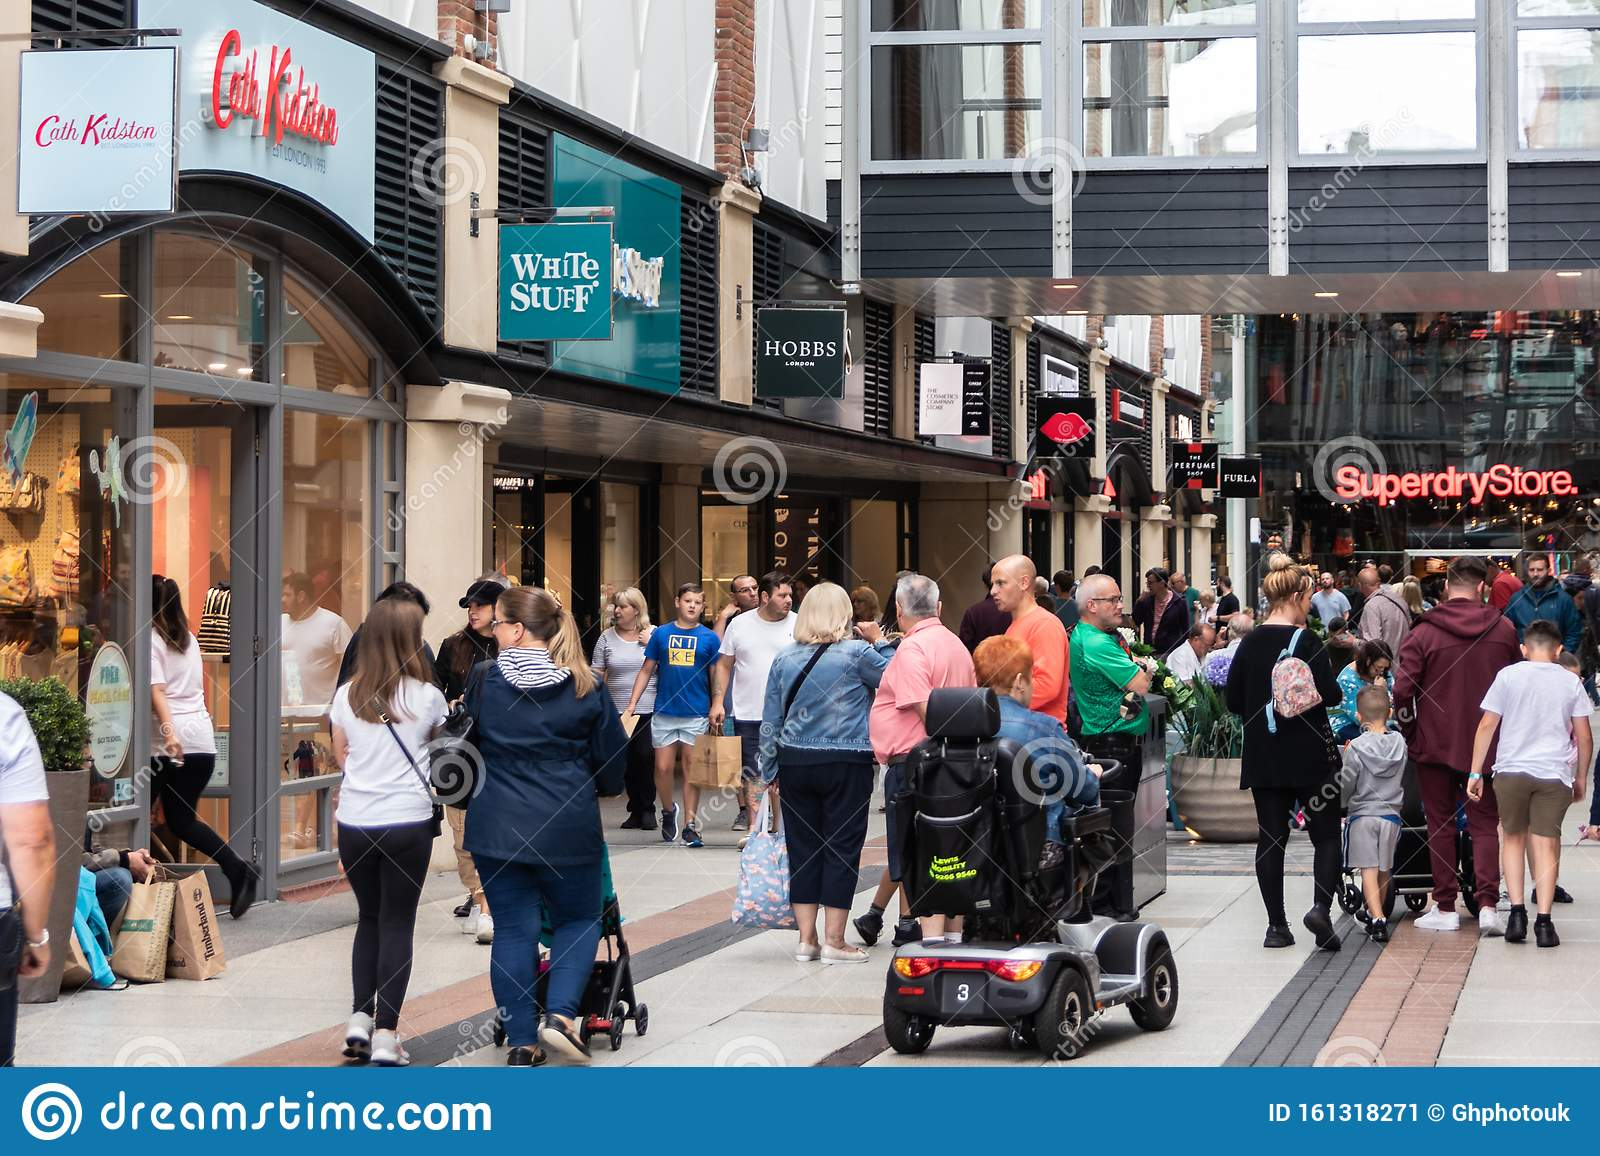 portsmouth-hampshire-uk-shoppers-walking-past-shop-windows-busy-shopping-centre-161318271.jpg?profile=RESIZE_400x